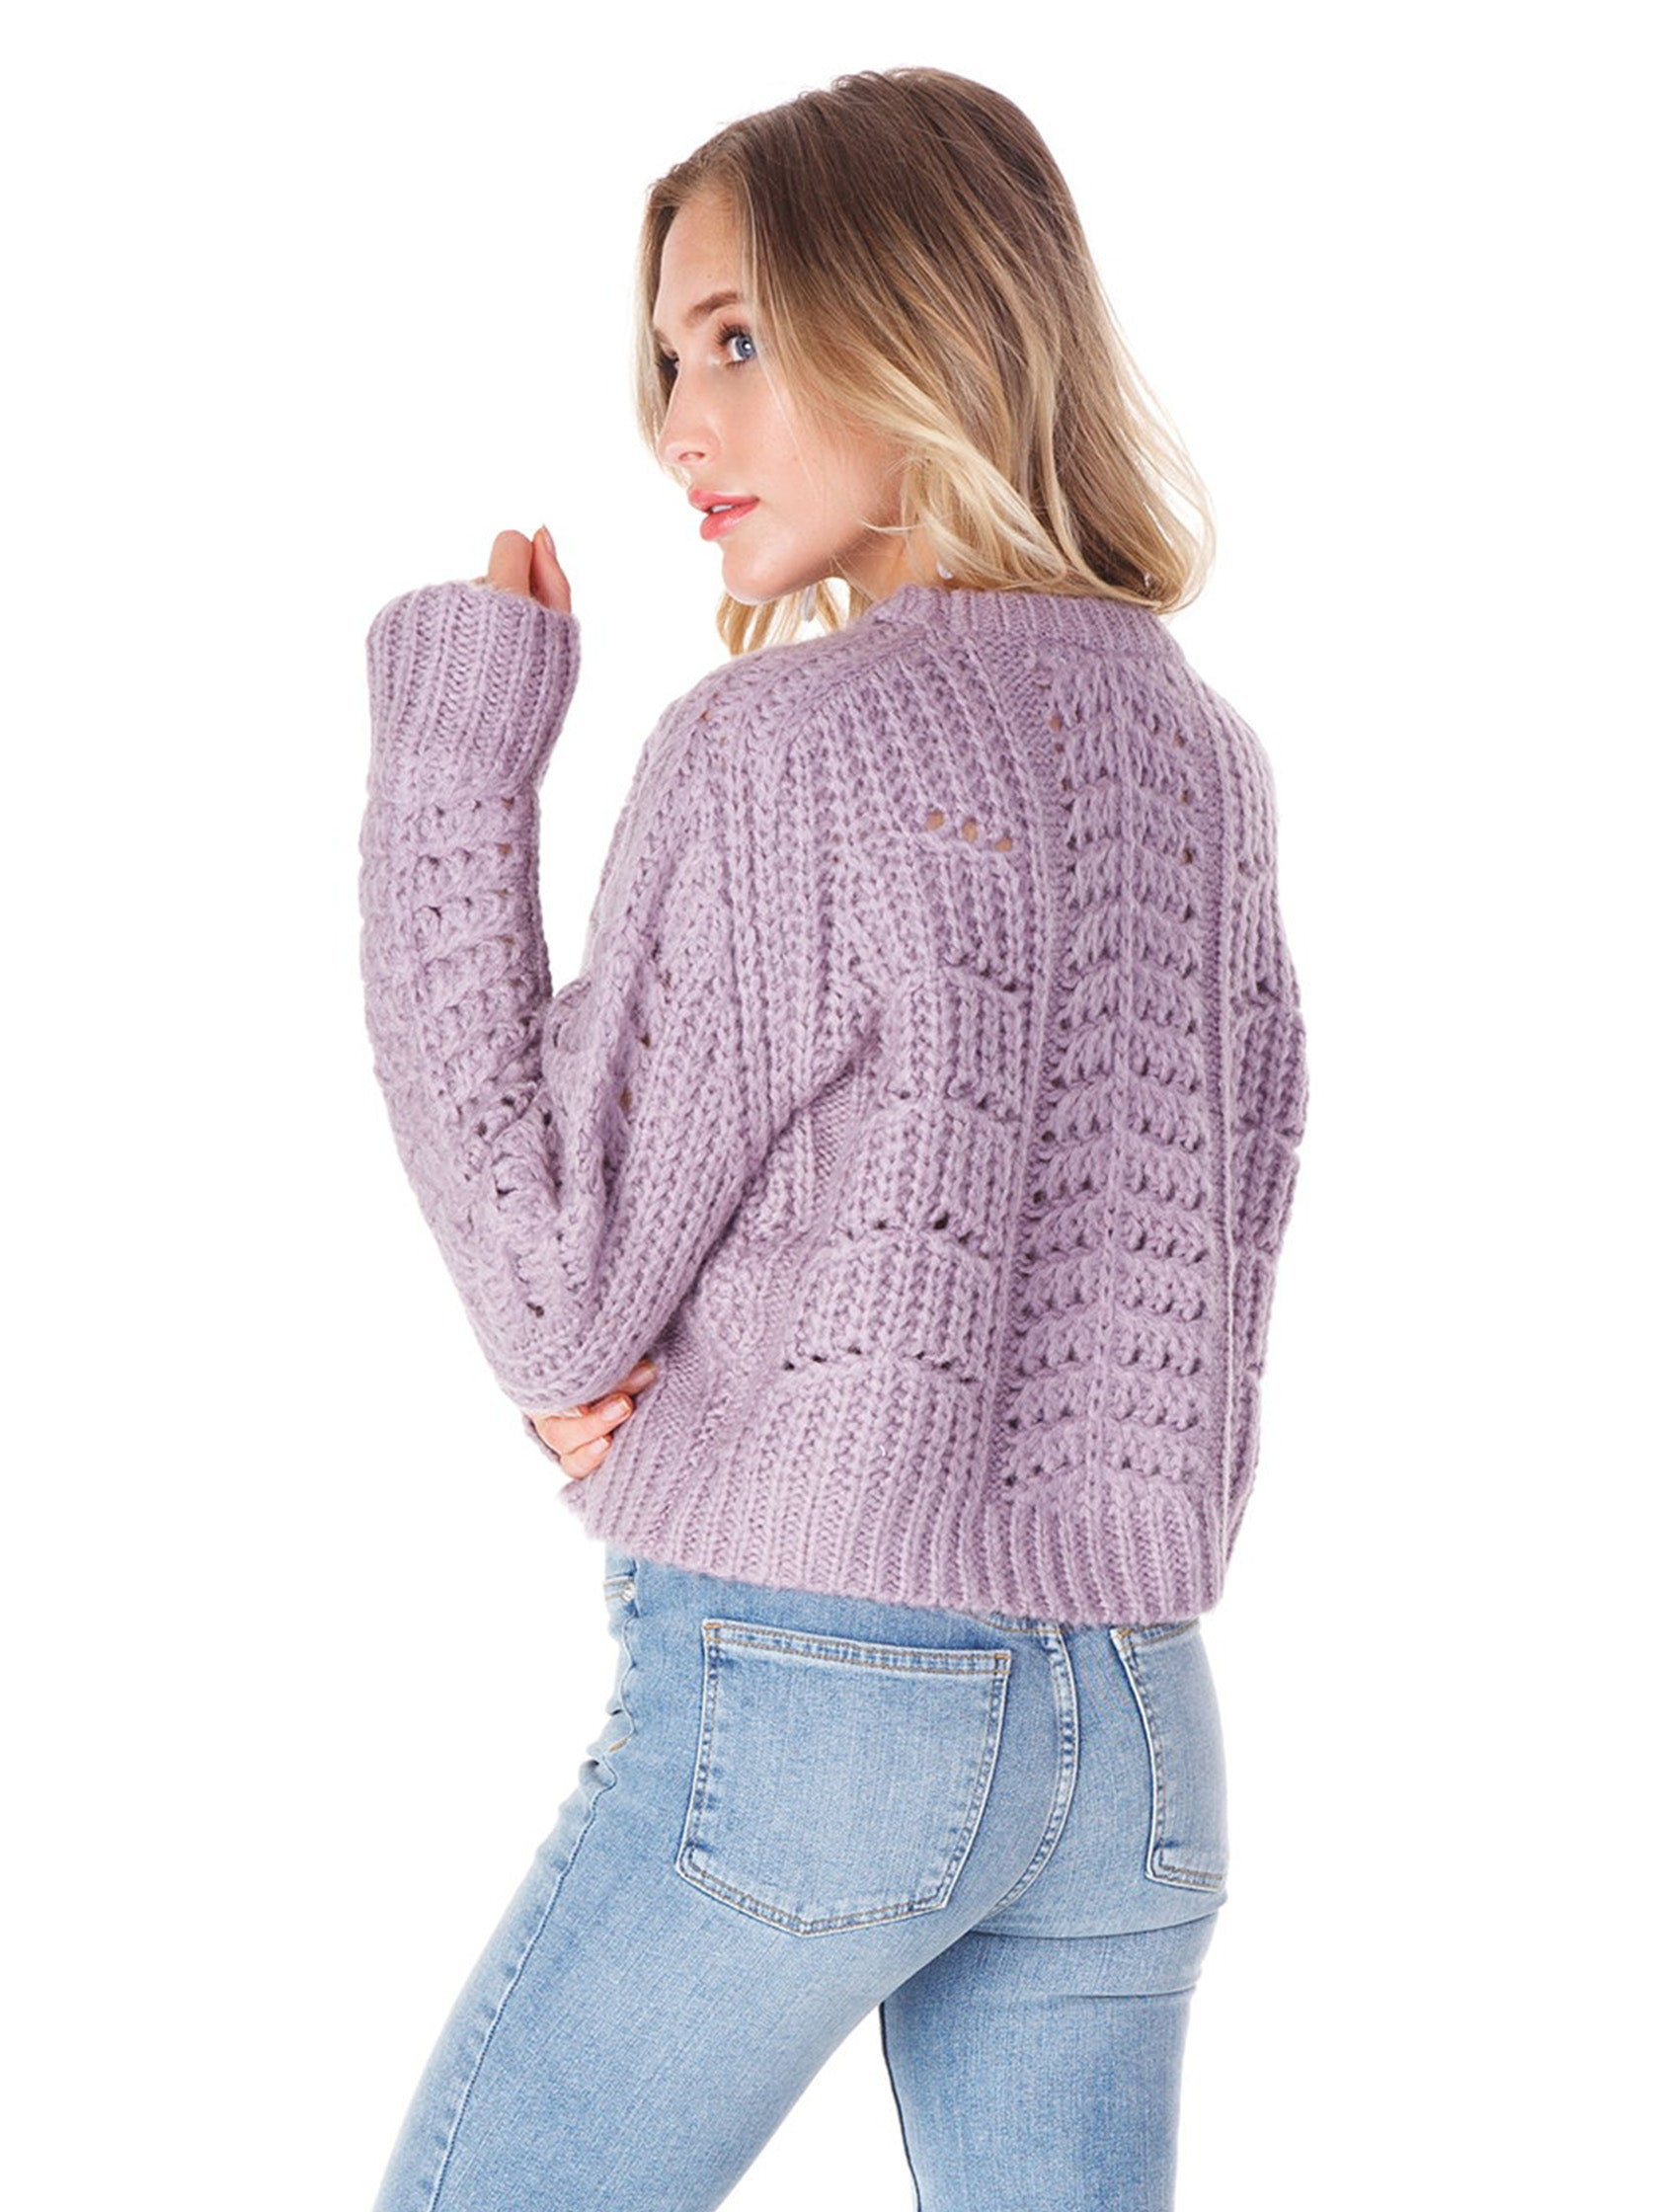 Women outfit in a sweater rental from ASTR called Georgia Sweater